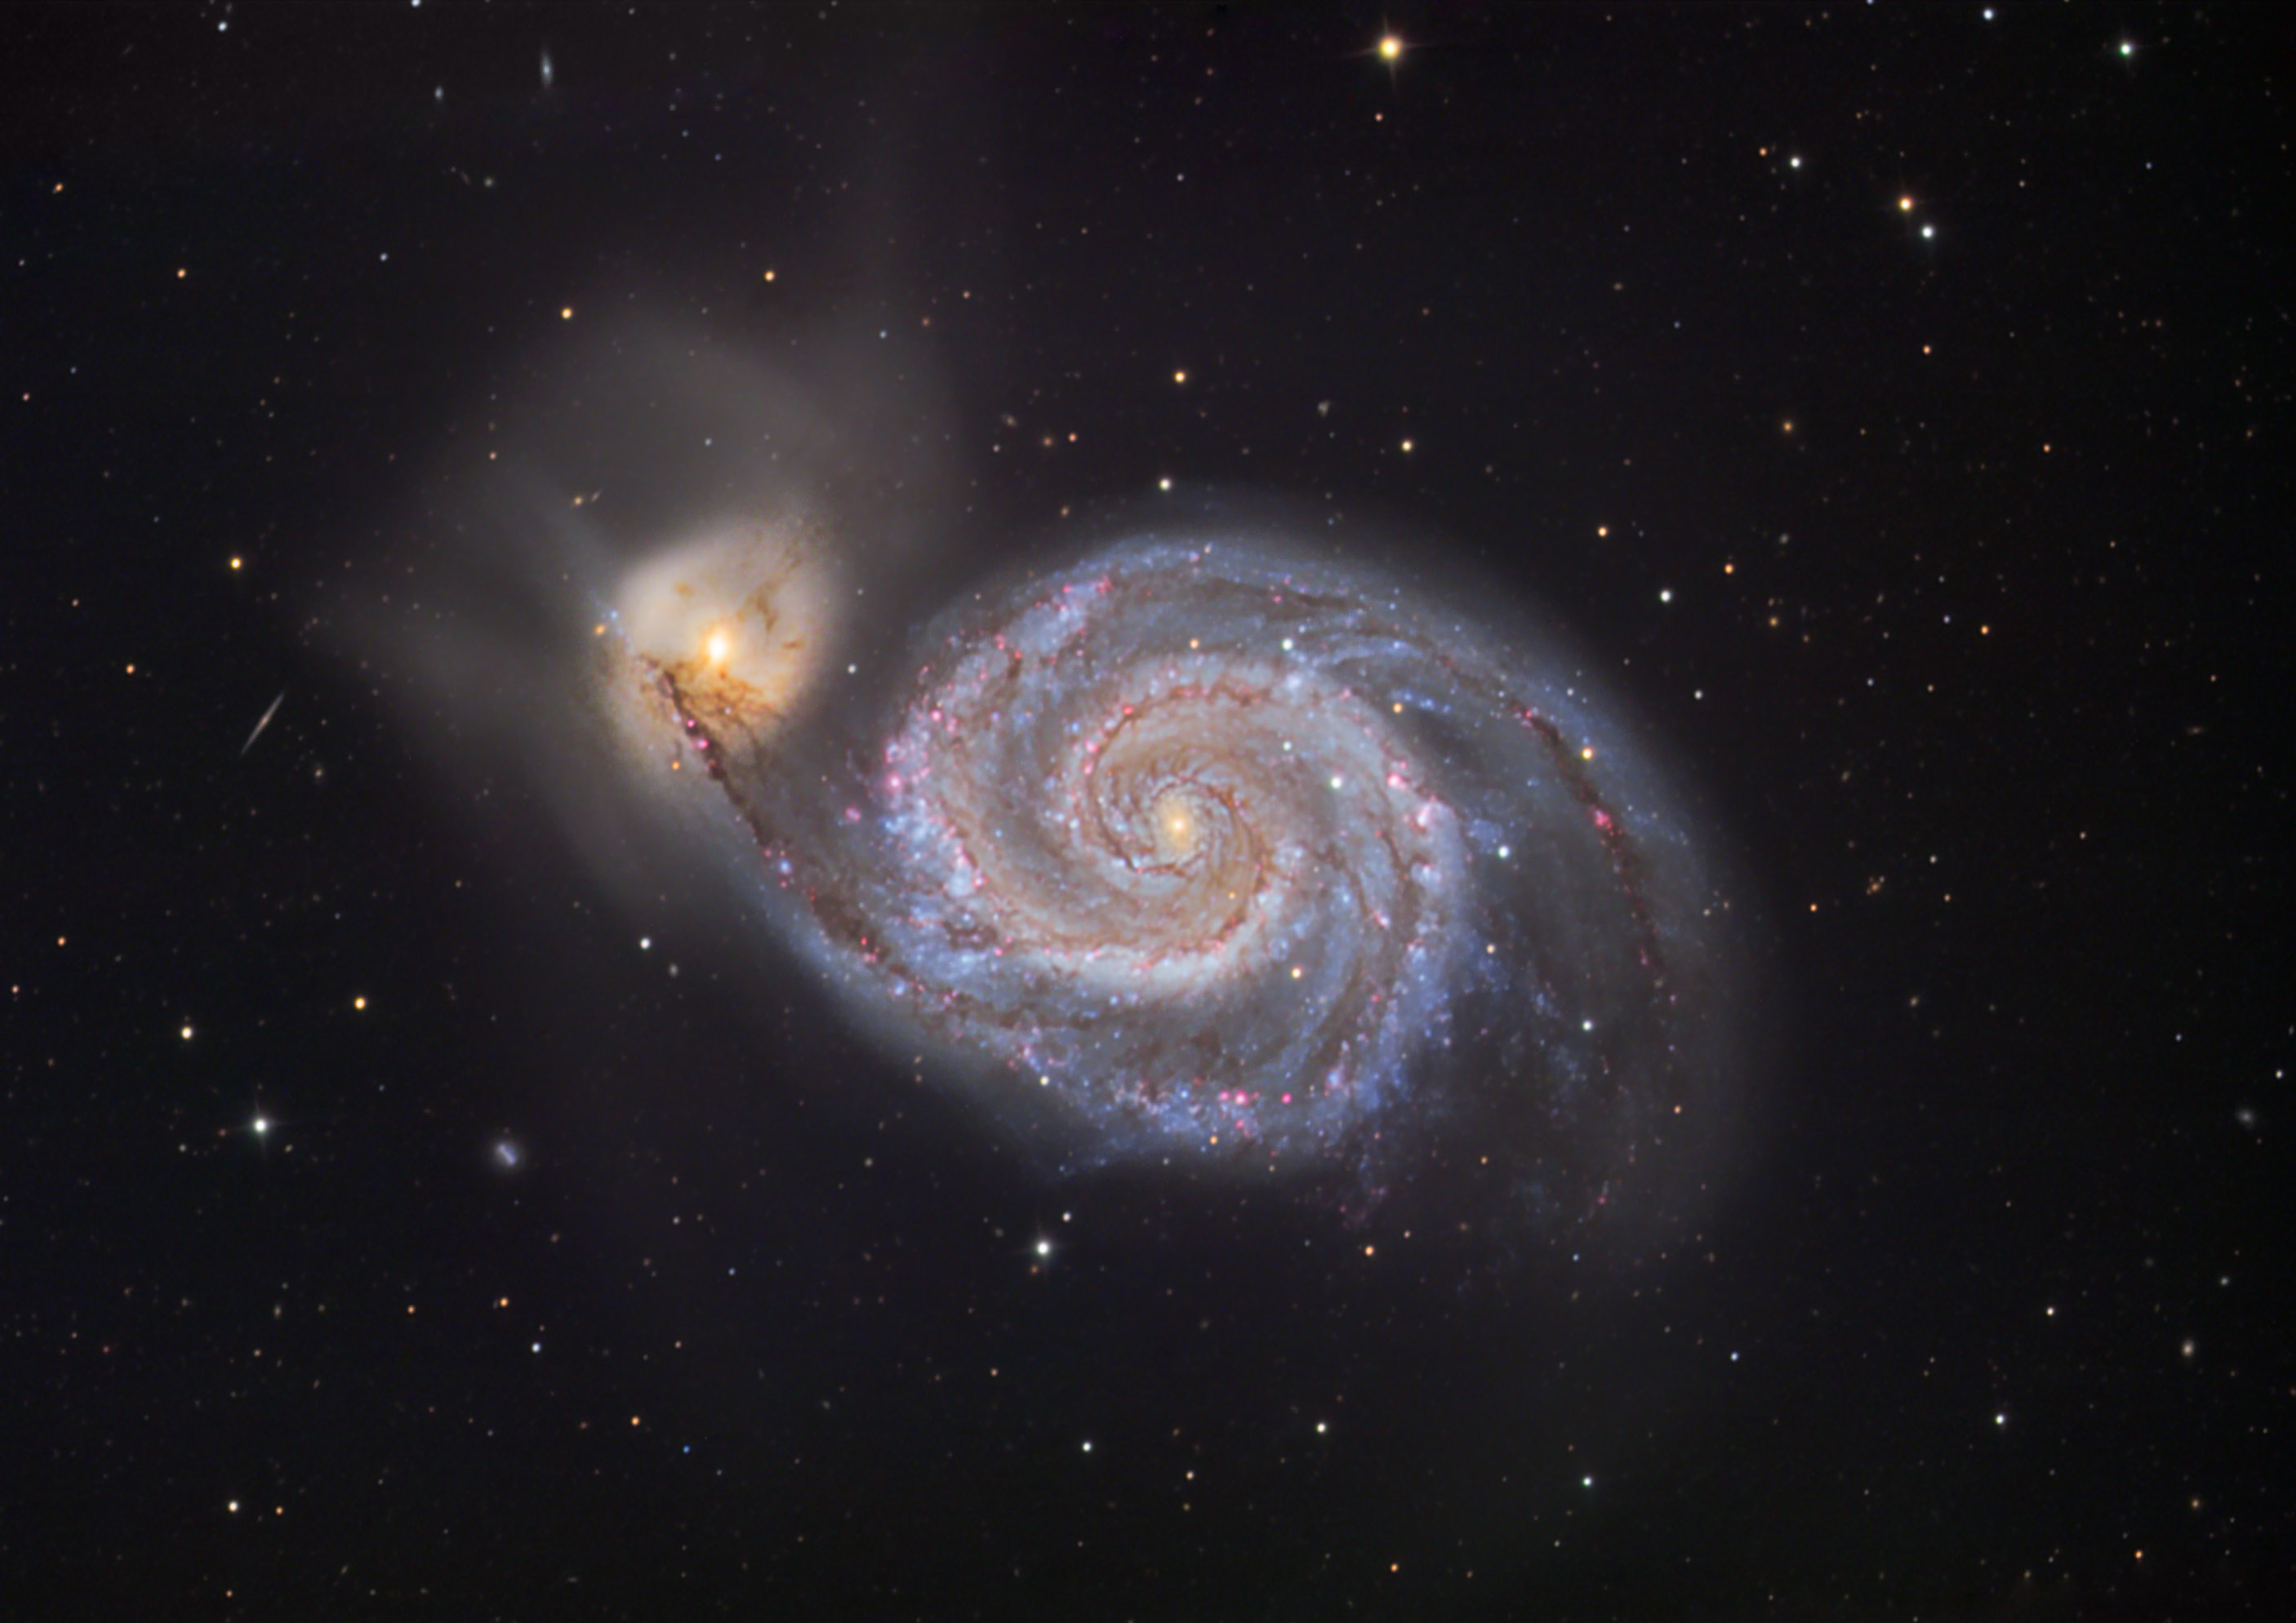 M51 by Keith139